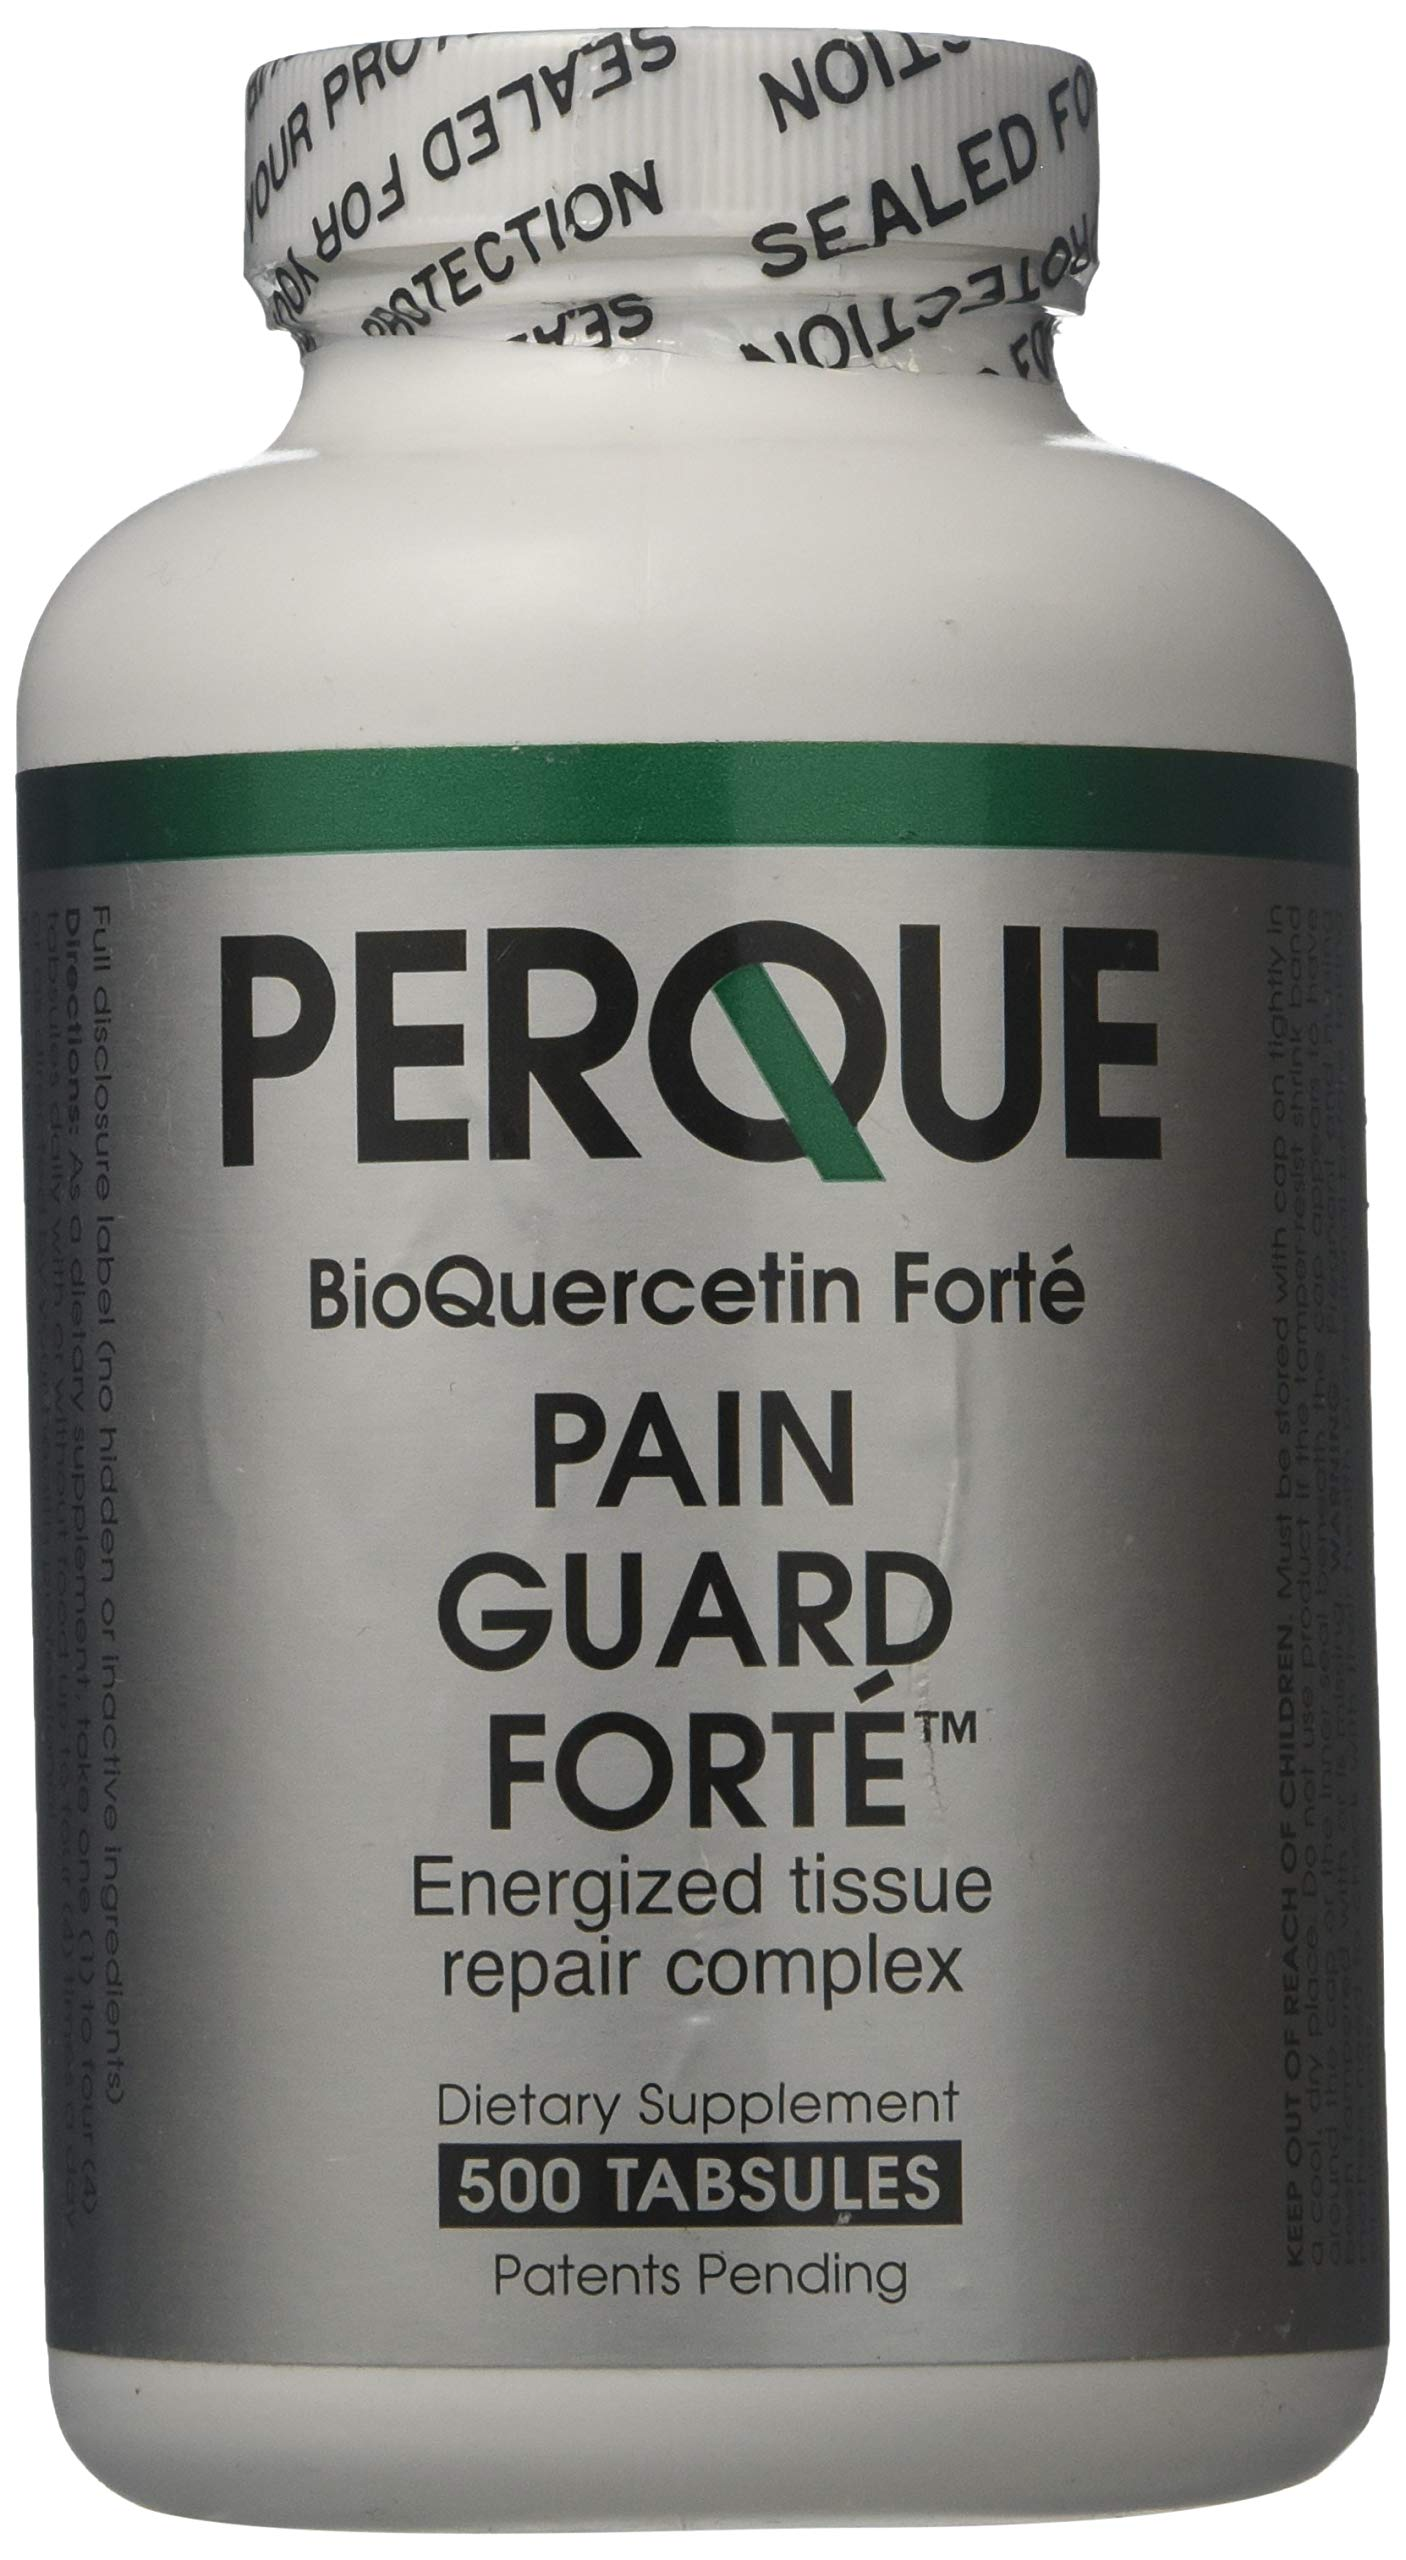 Pain Guard Forte 500 Tablets by Perque